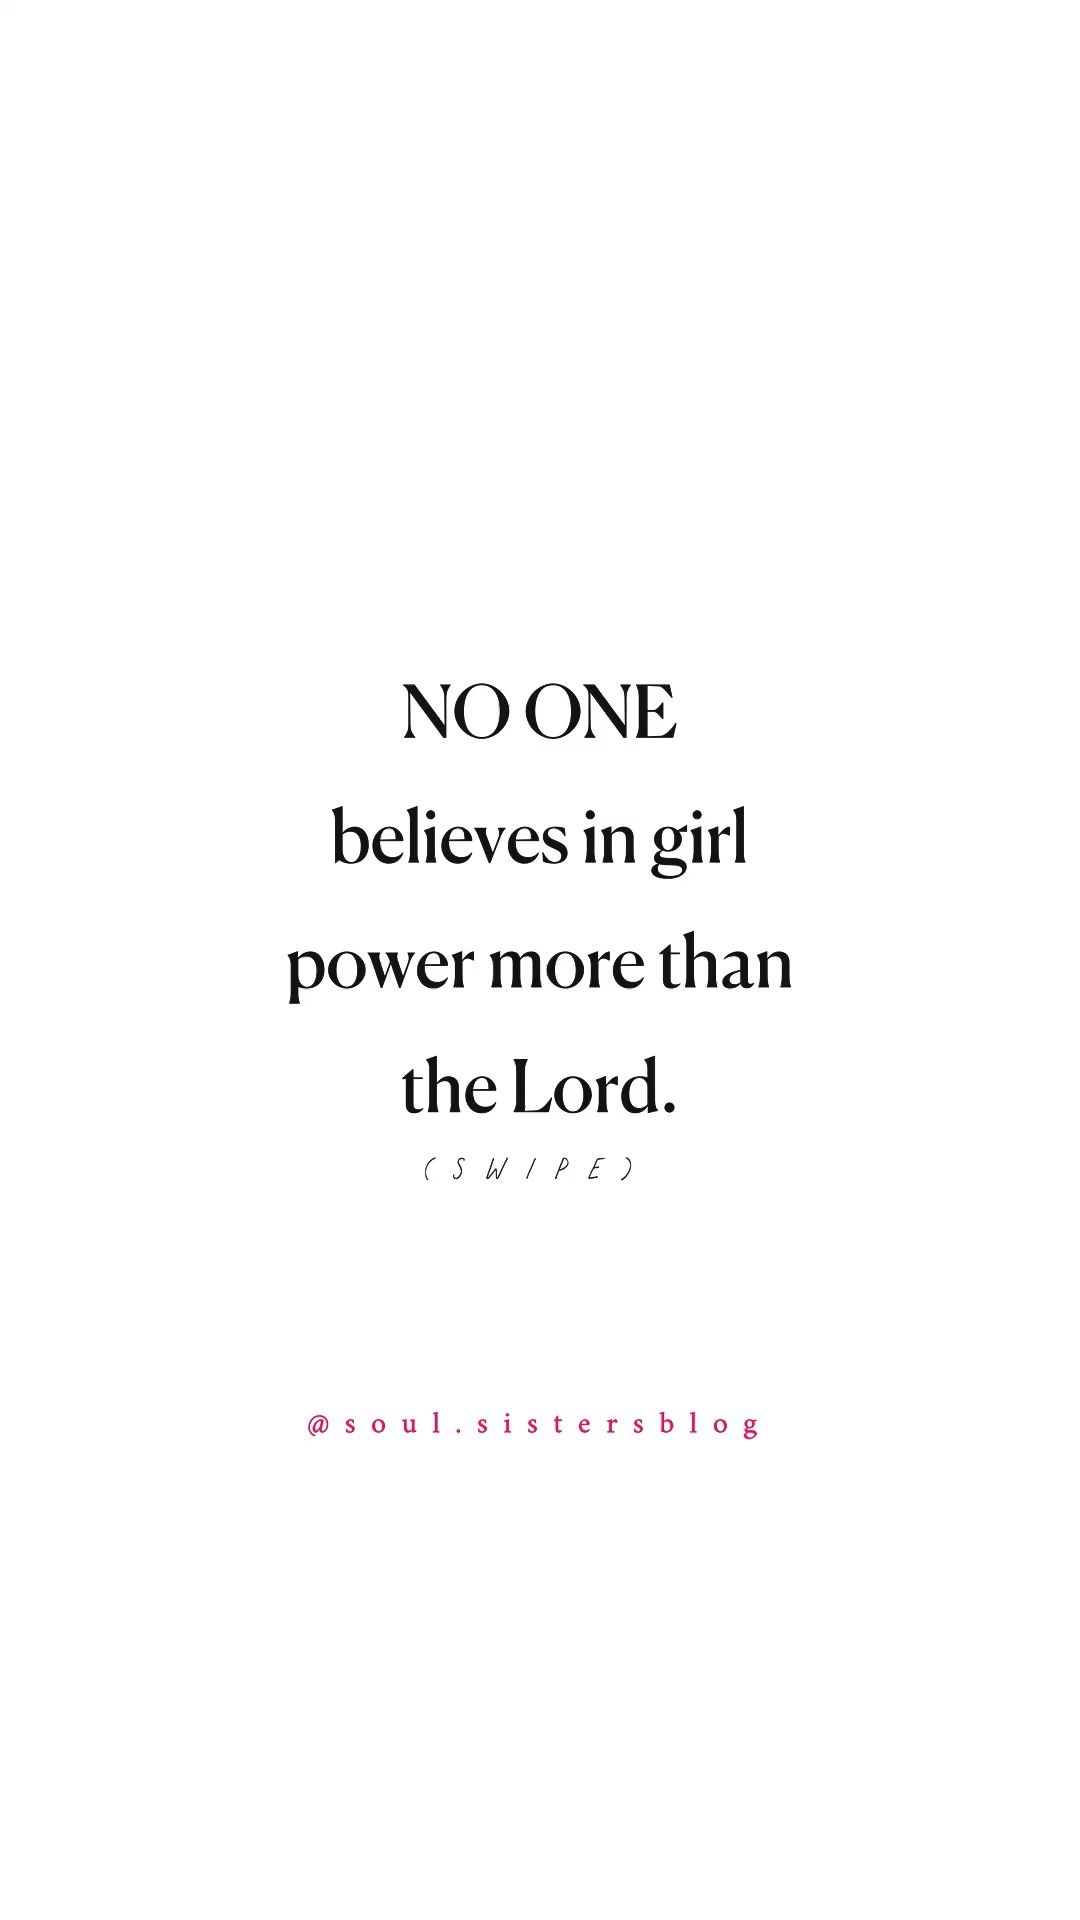 No one believes in girl power as much as the Lord.